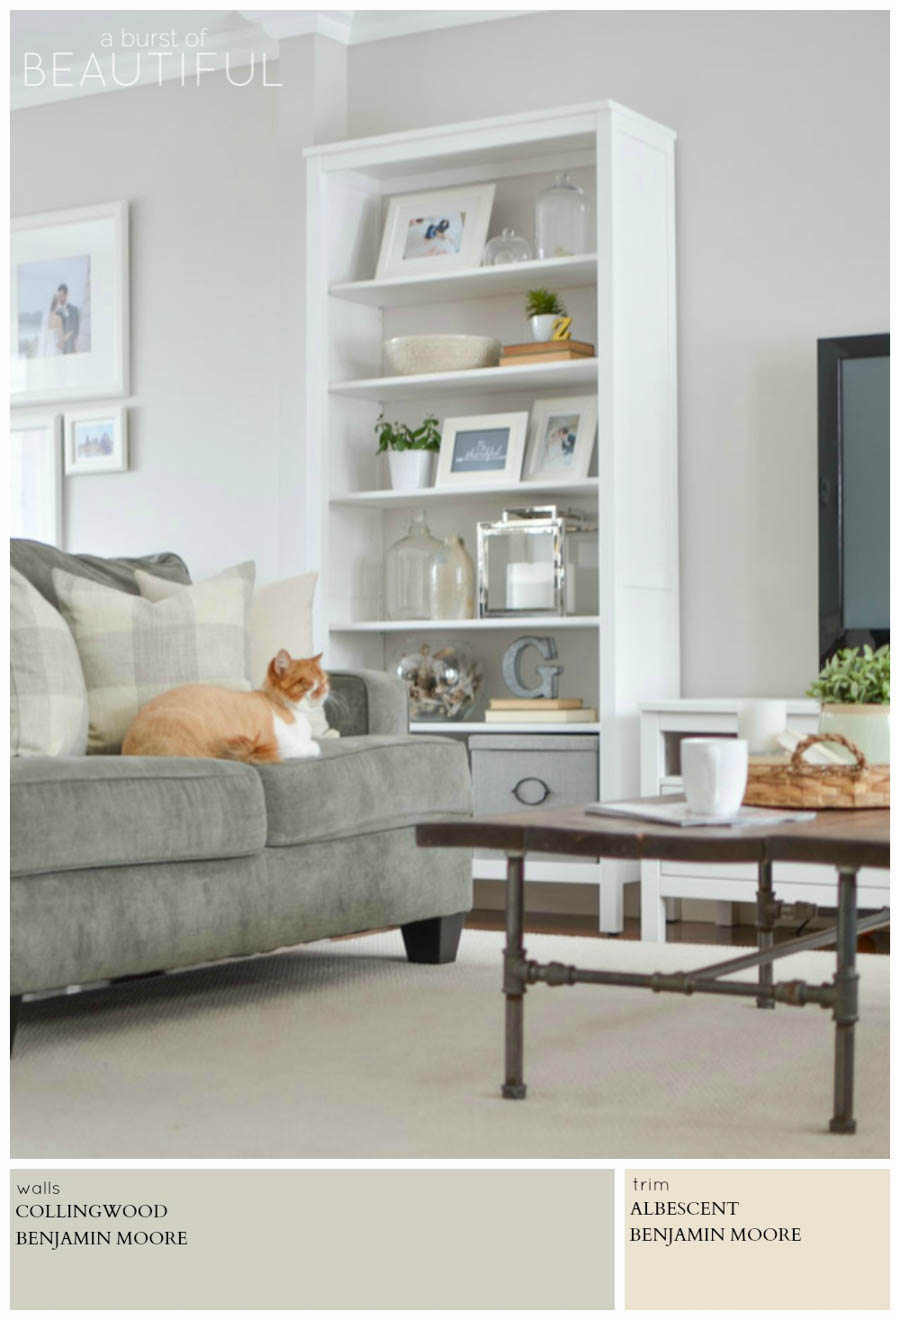 Superb Collingwood By Benjamin Moore Is A Classic And Versatile Color For Any  Space. A Burst